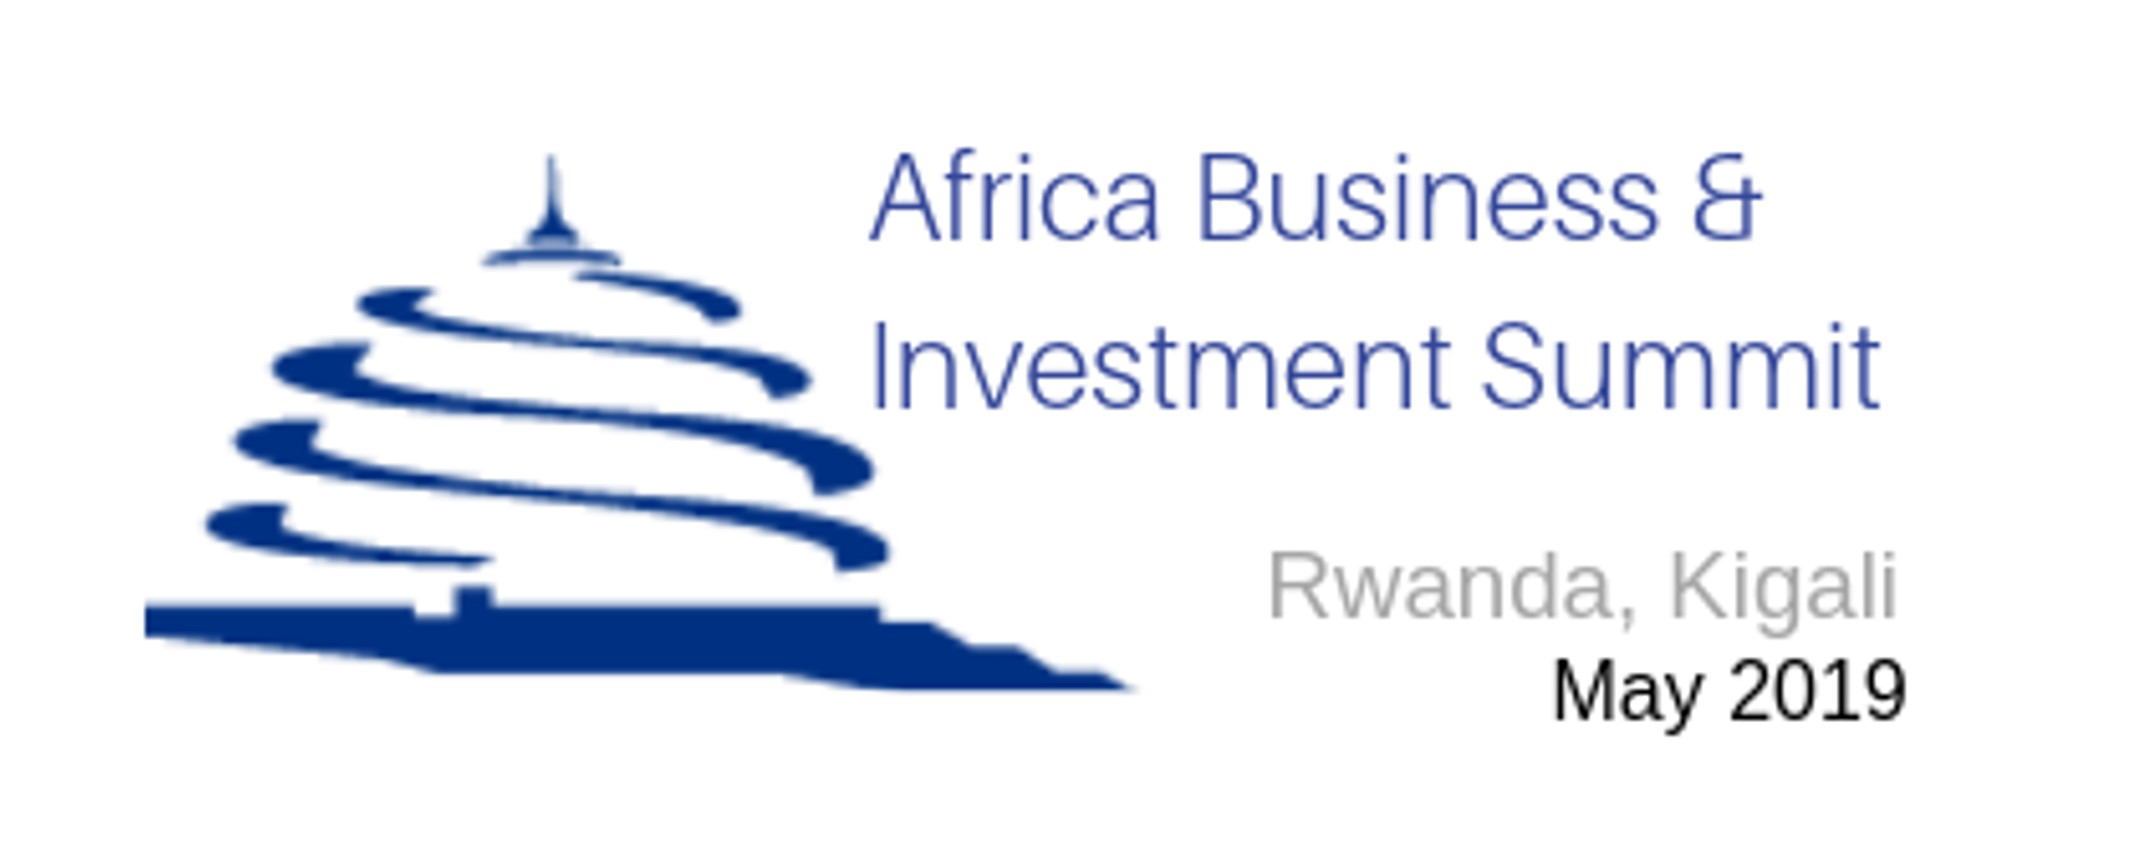 Zixtech Corporation - Africa Business & Investment Summit Movemeback African event cover image